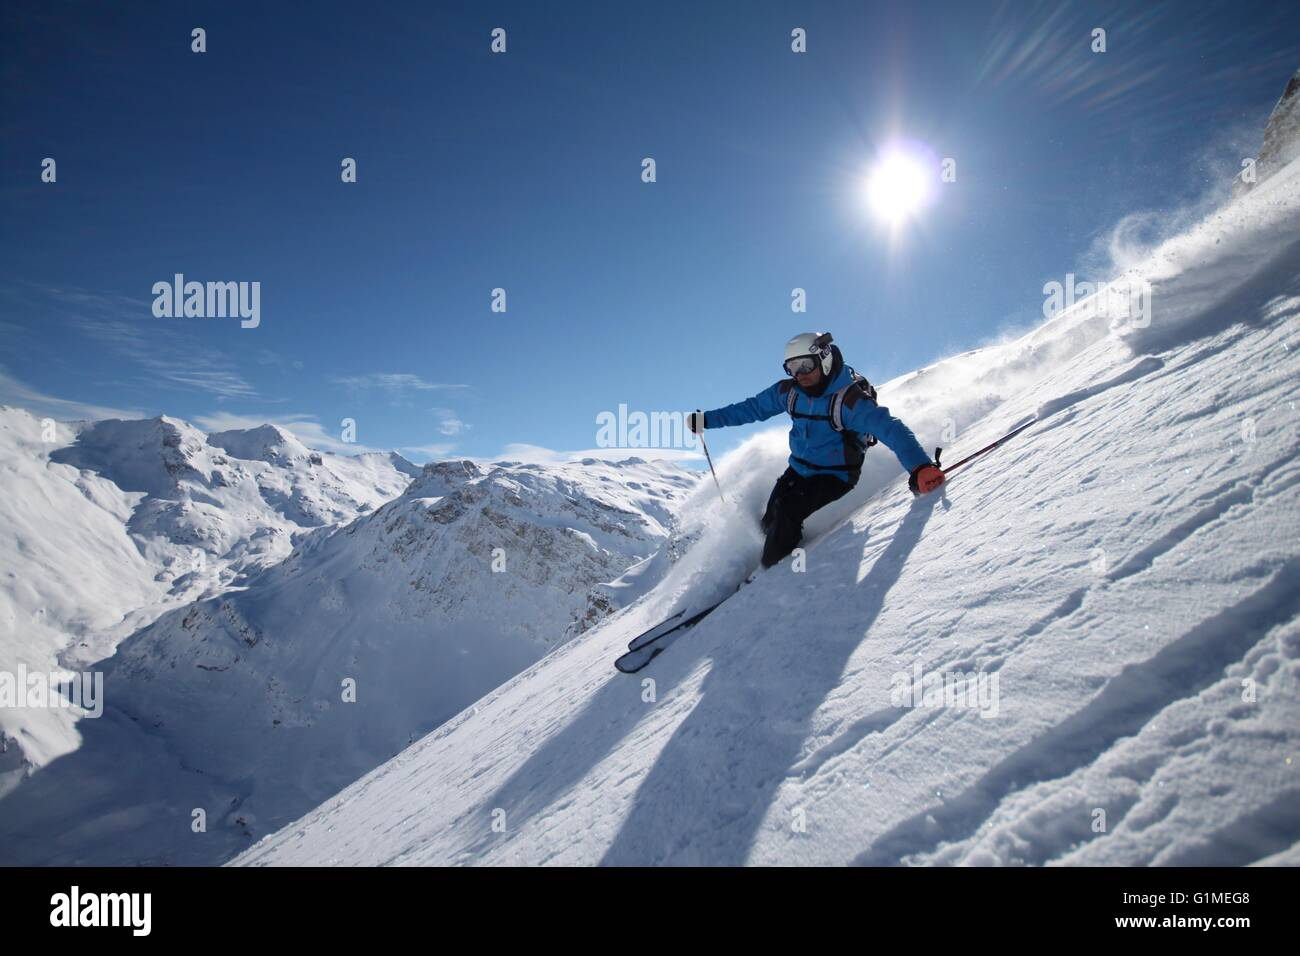 Off piste skiing in Val d'Isere, French Alps, Off piste, Ski, Snow - Stock Image